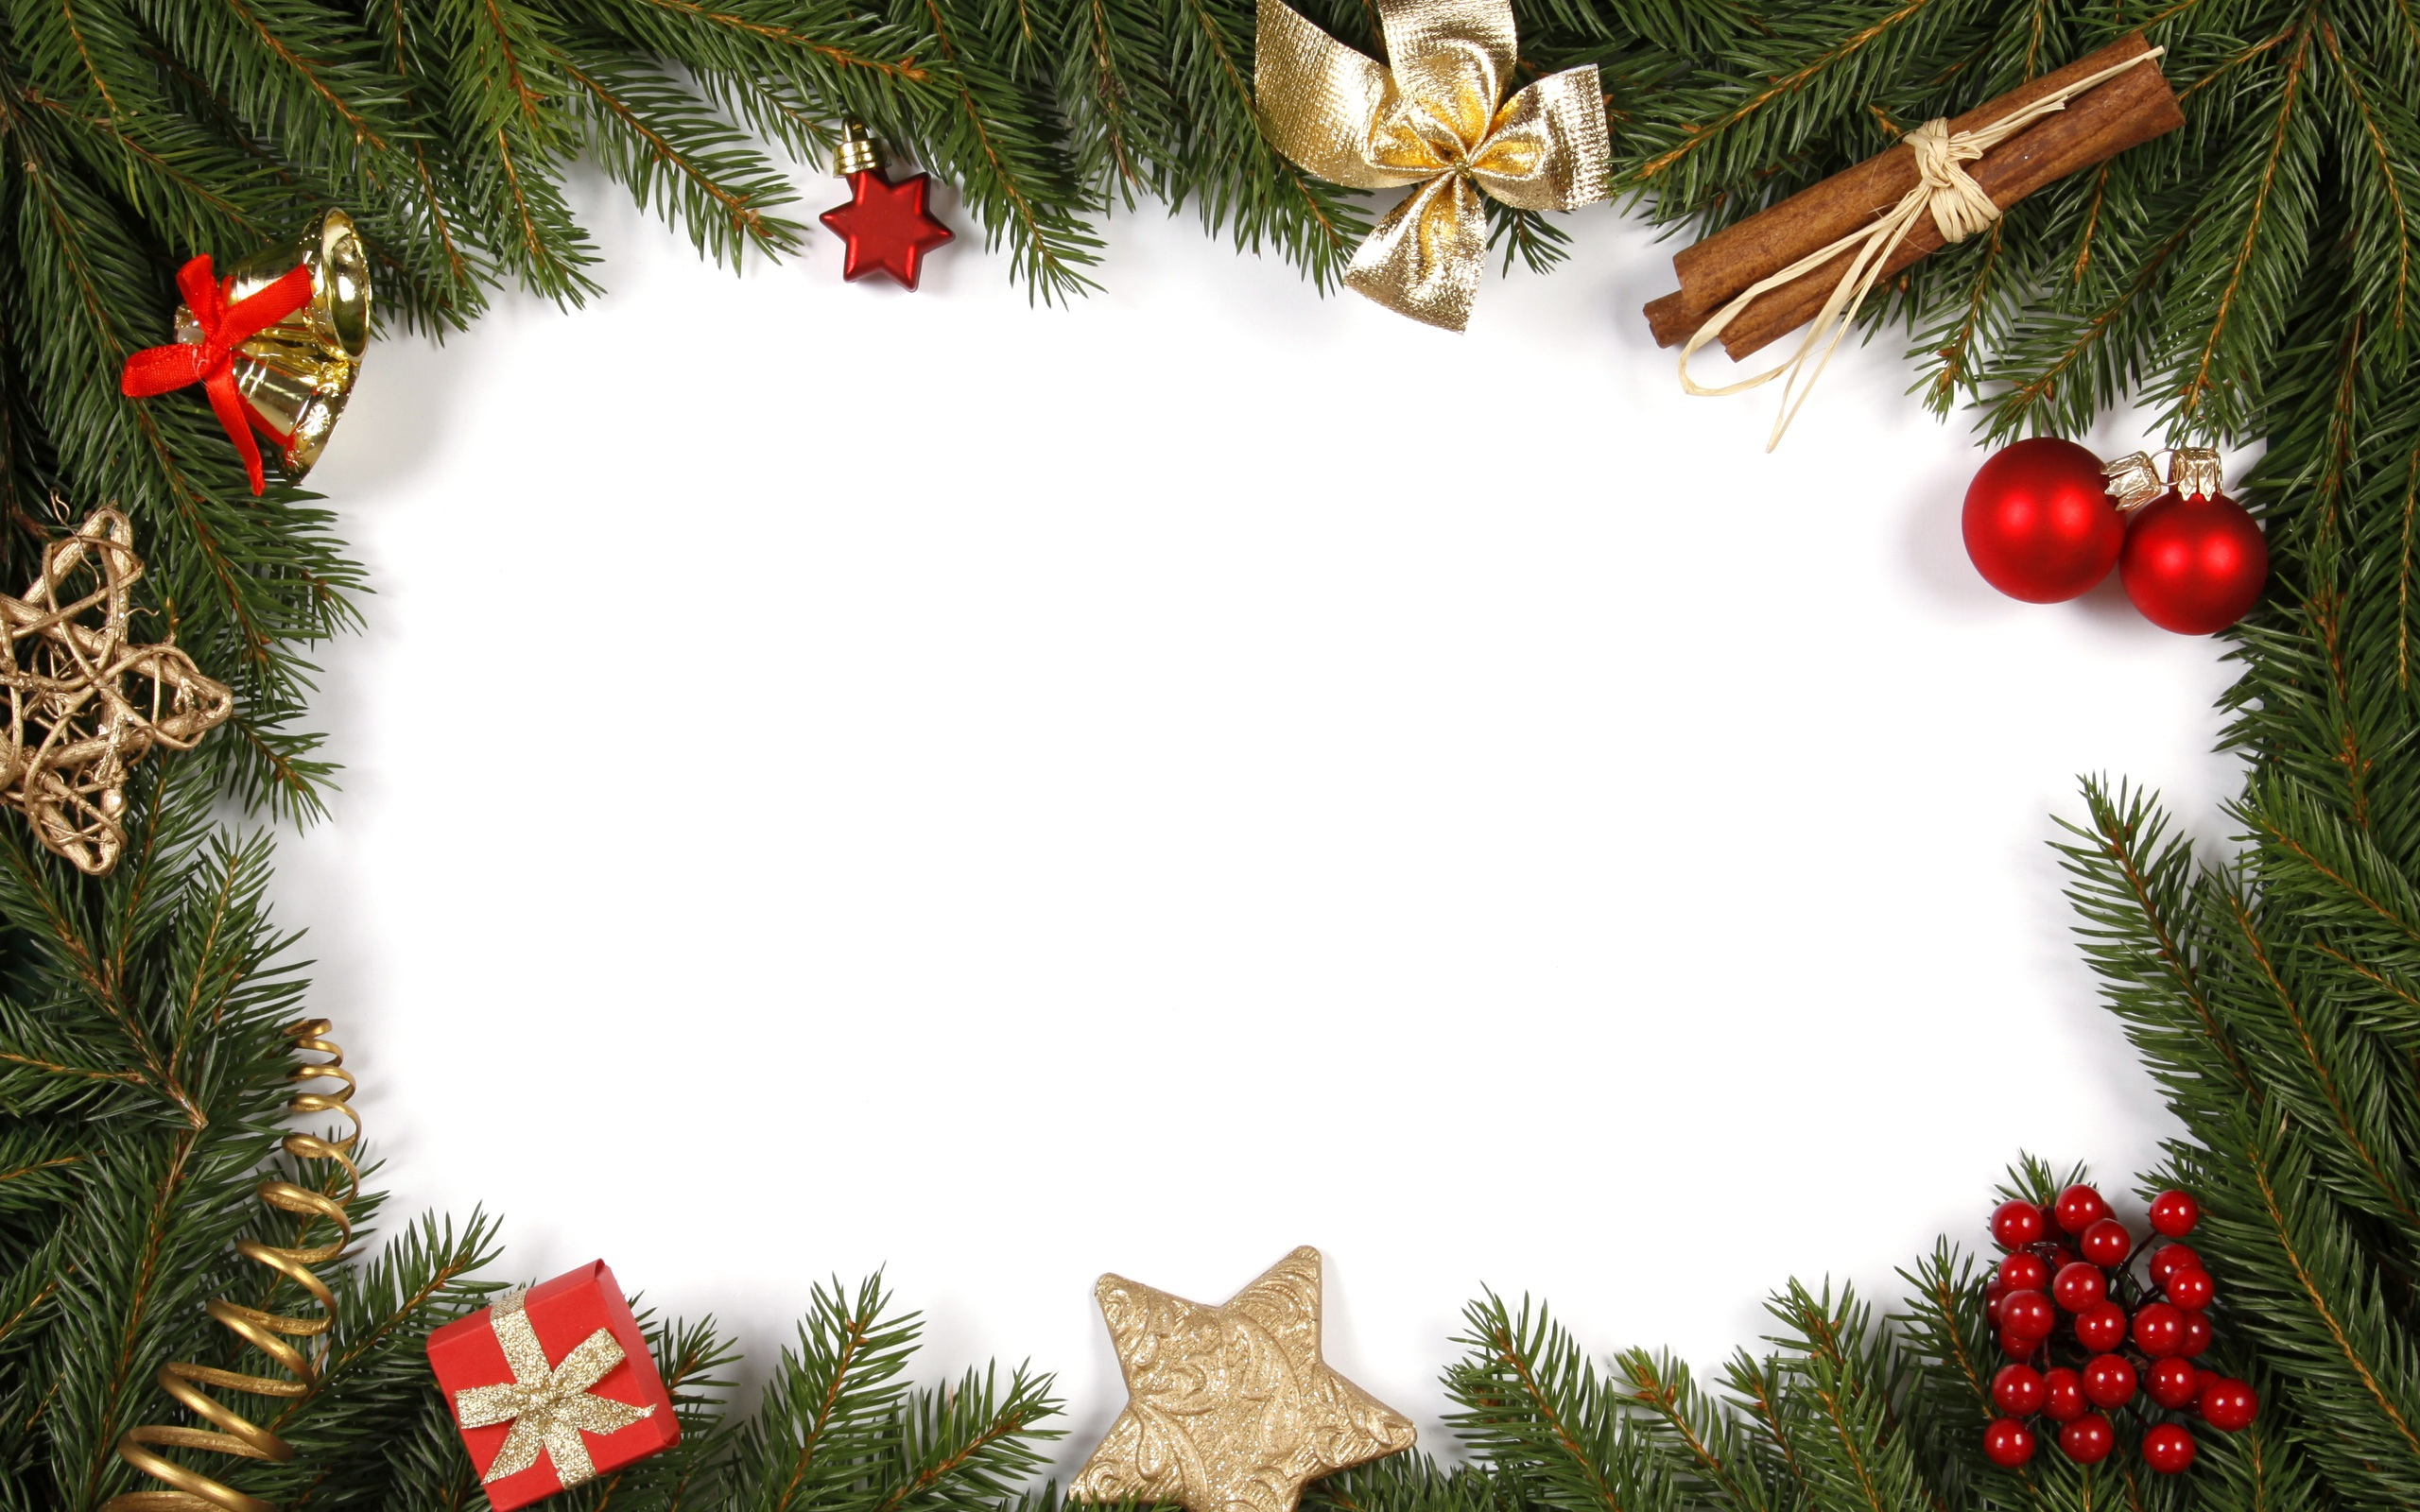 Christmas Decorations Simple Decorating 10 On Home Decor Ideas 2560x1600